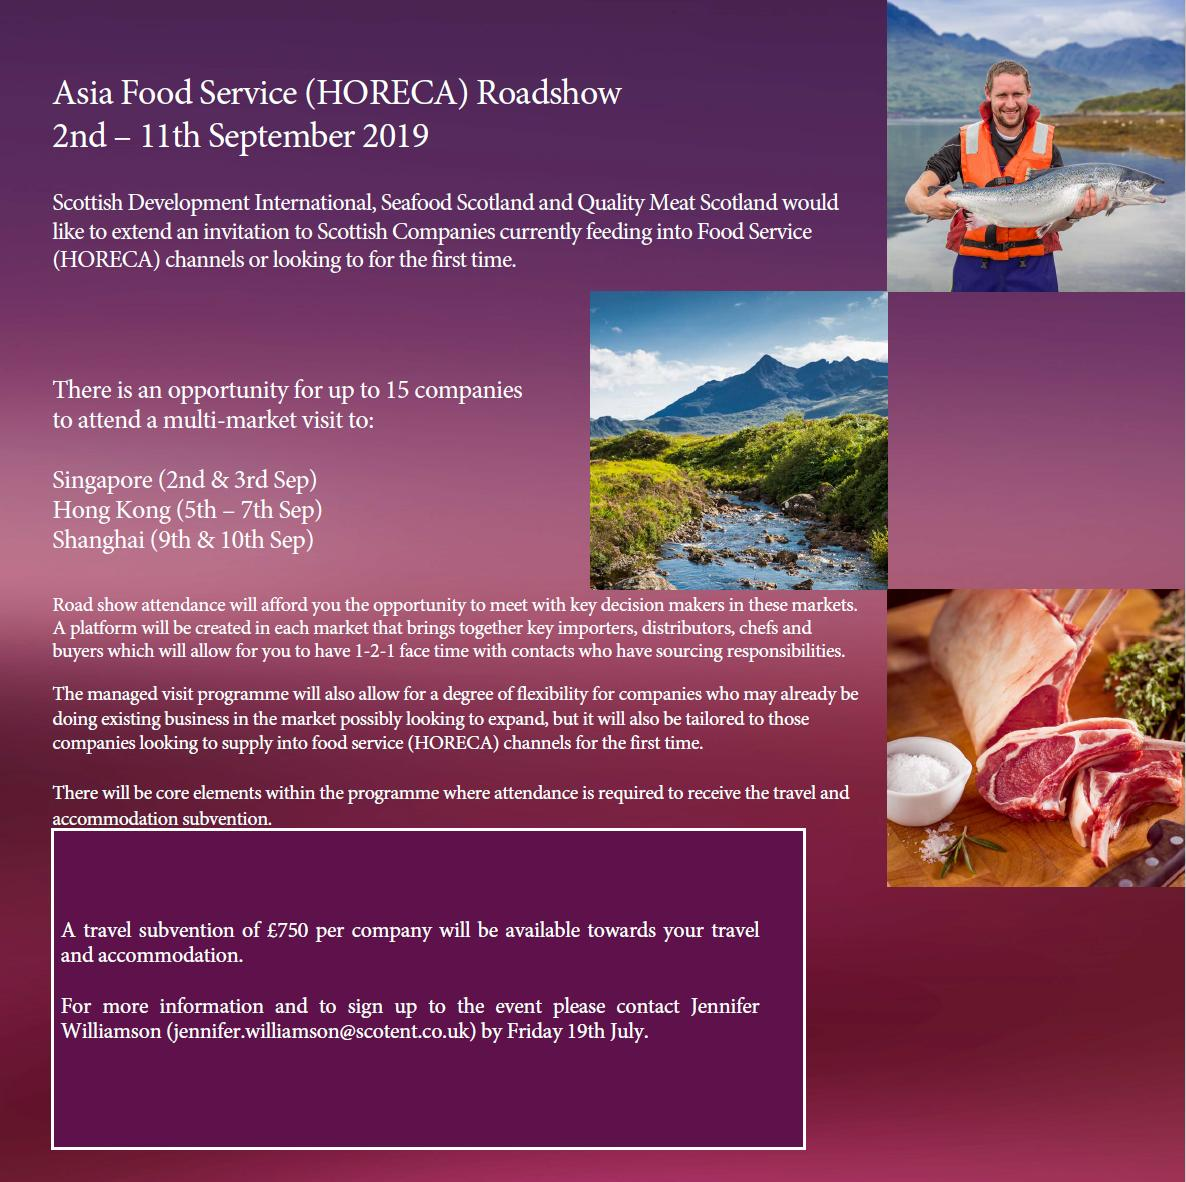 Don't miss your chance to sign up for the Asia Food Service Road Show - applications close this Friday! #lovescottishseafood #Export